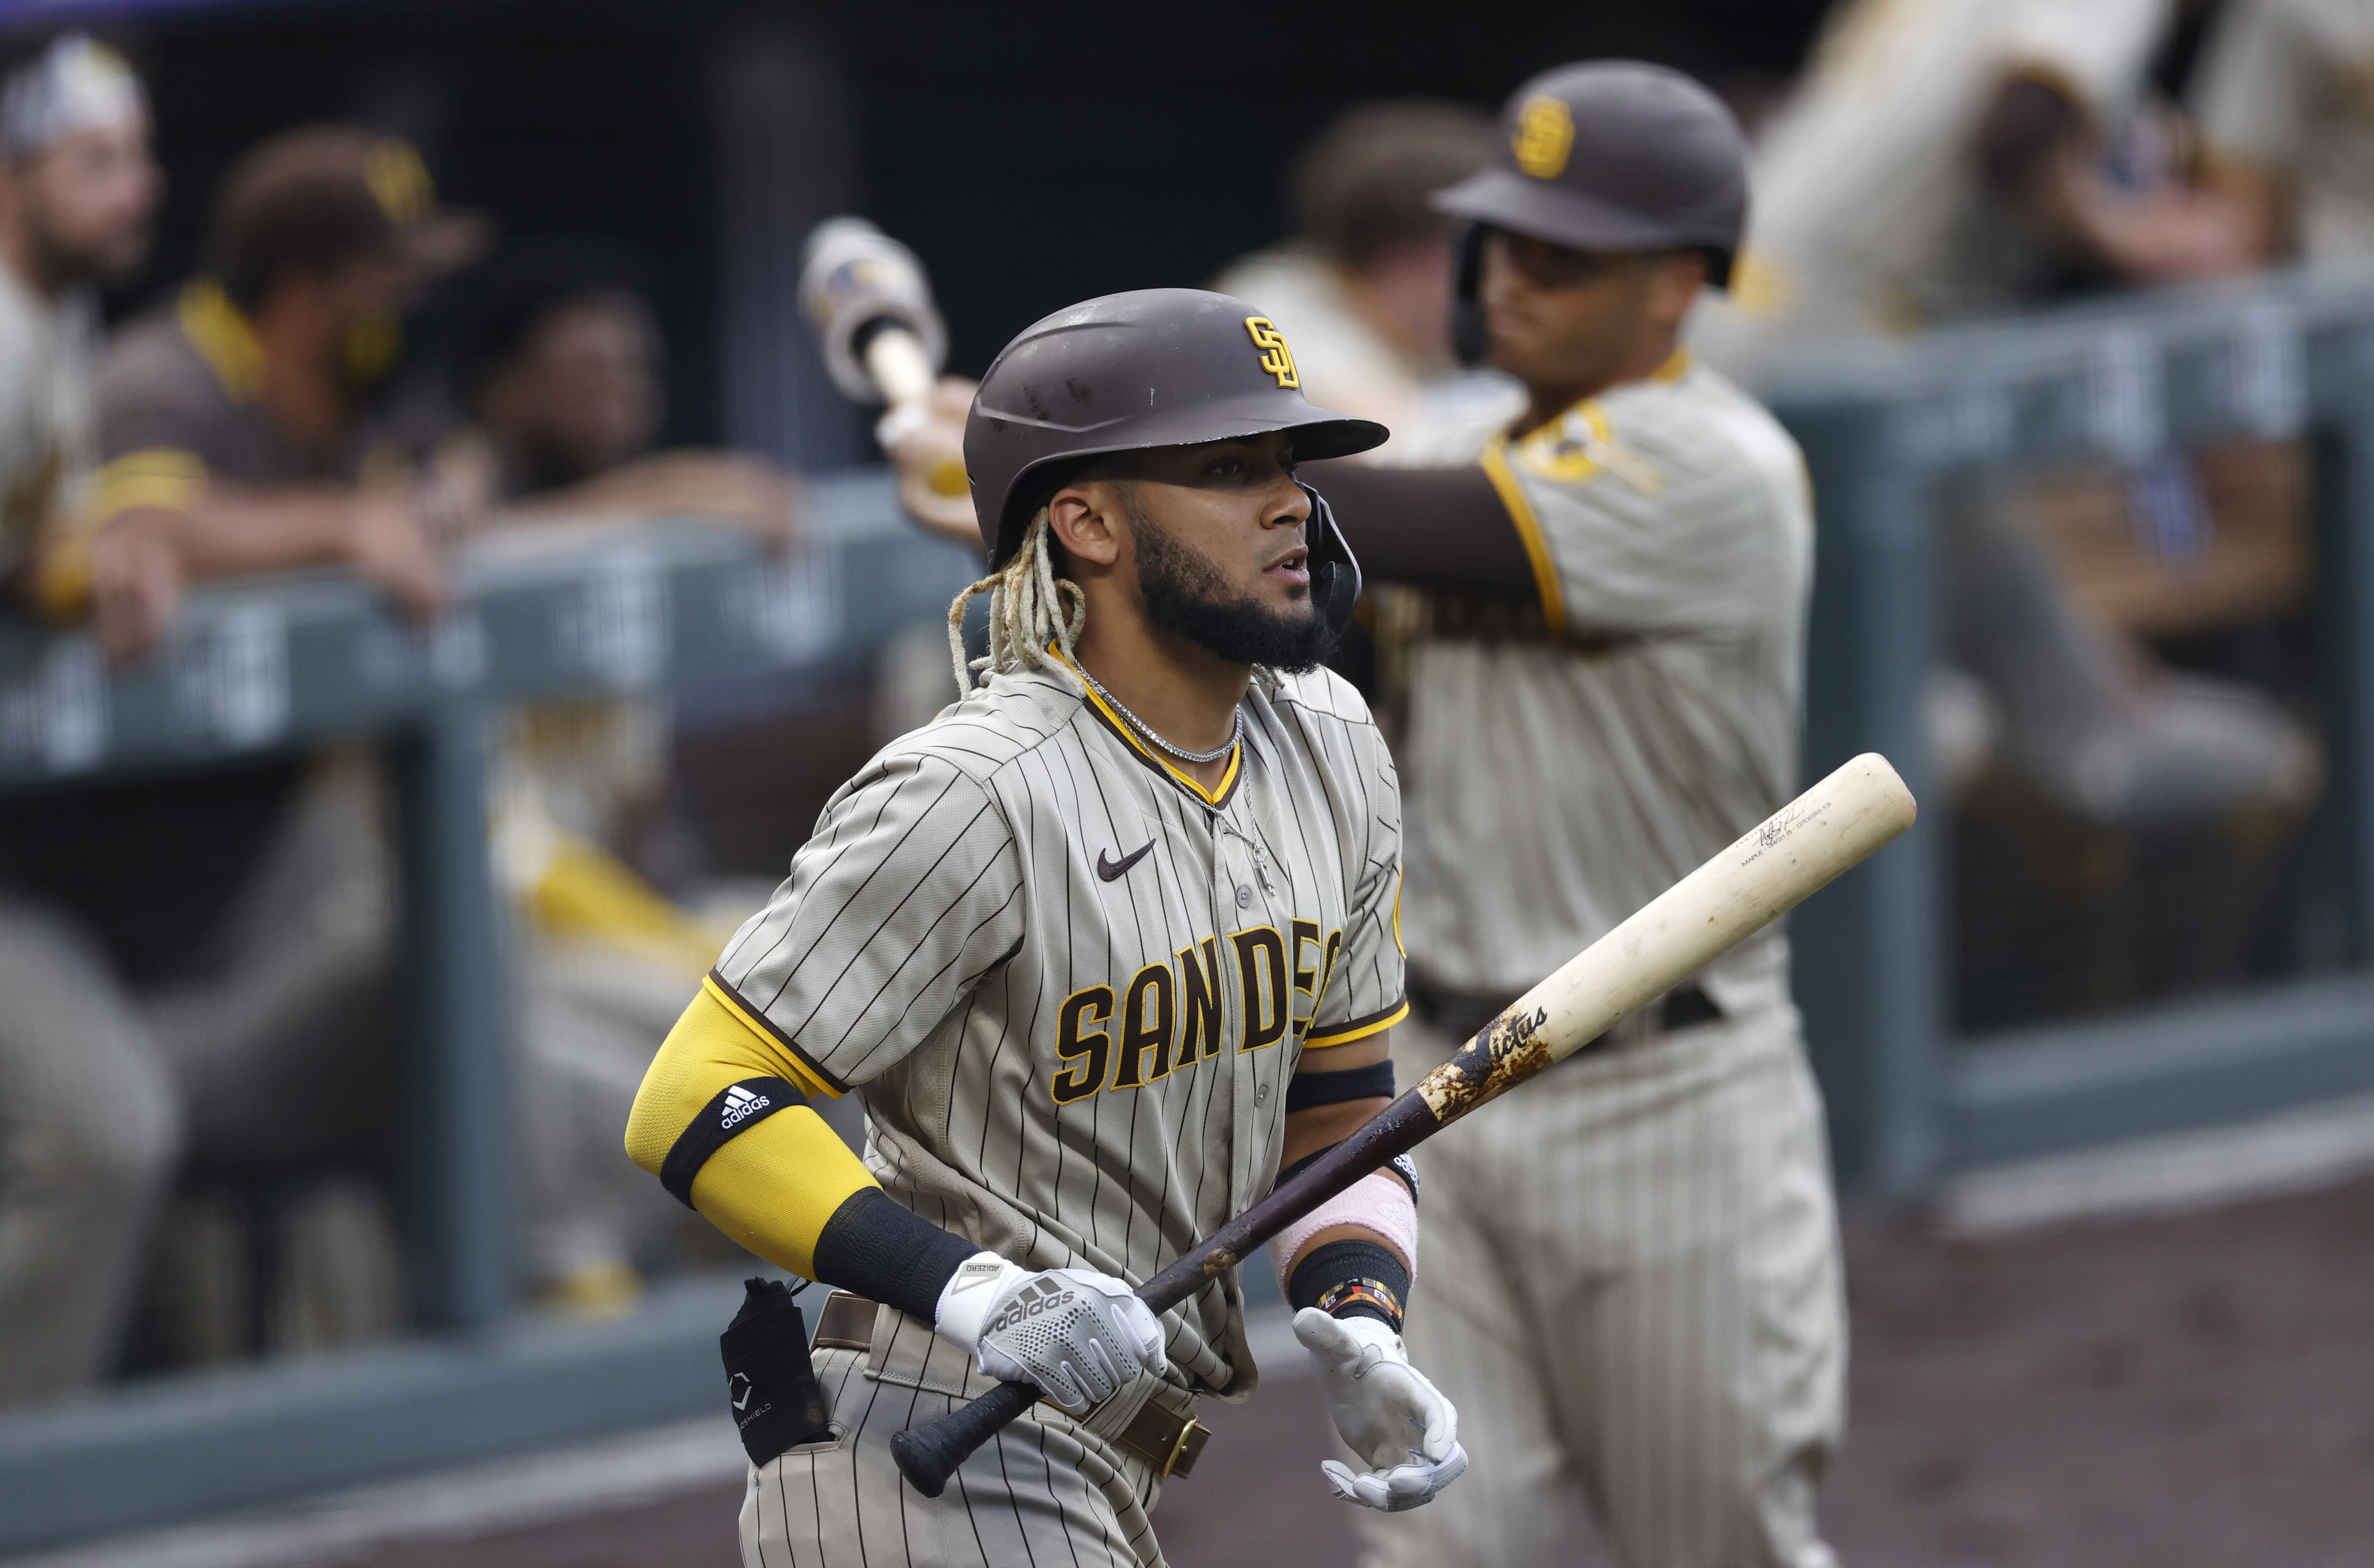 San Diego Padres' Fernando Tatis Jr. heads to the plate to lead off the first inning of a baseball game against the Colorado Rockies Friday, July 31, 2020, in Denver. (AP Photo/David Zalubowski)